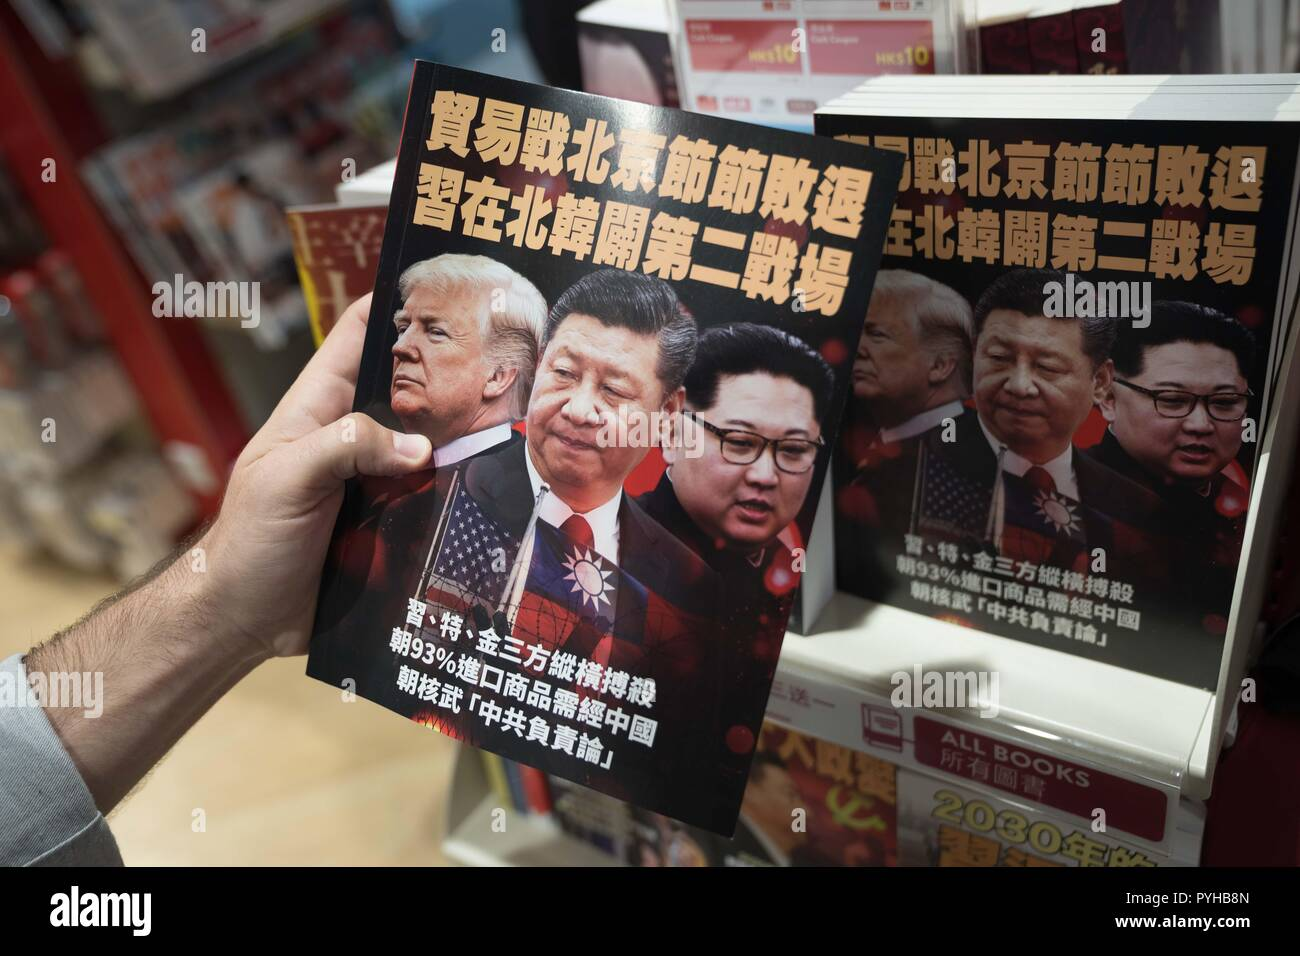 A book with US president Donald Trump, Chinese leader Xi Jinping and the North Korean leader Kim Jung Un as the front cover seen on sale in a book shop in Hong Kong airport. - Stock Image